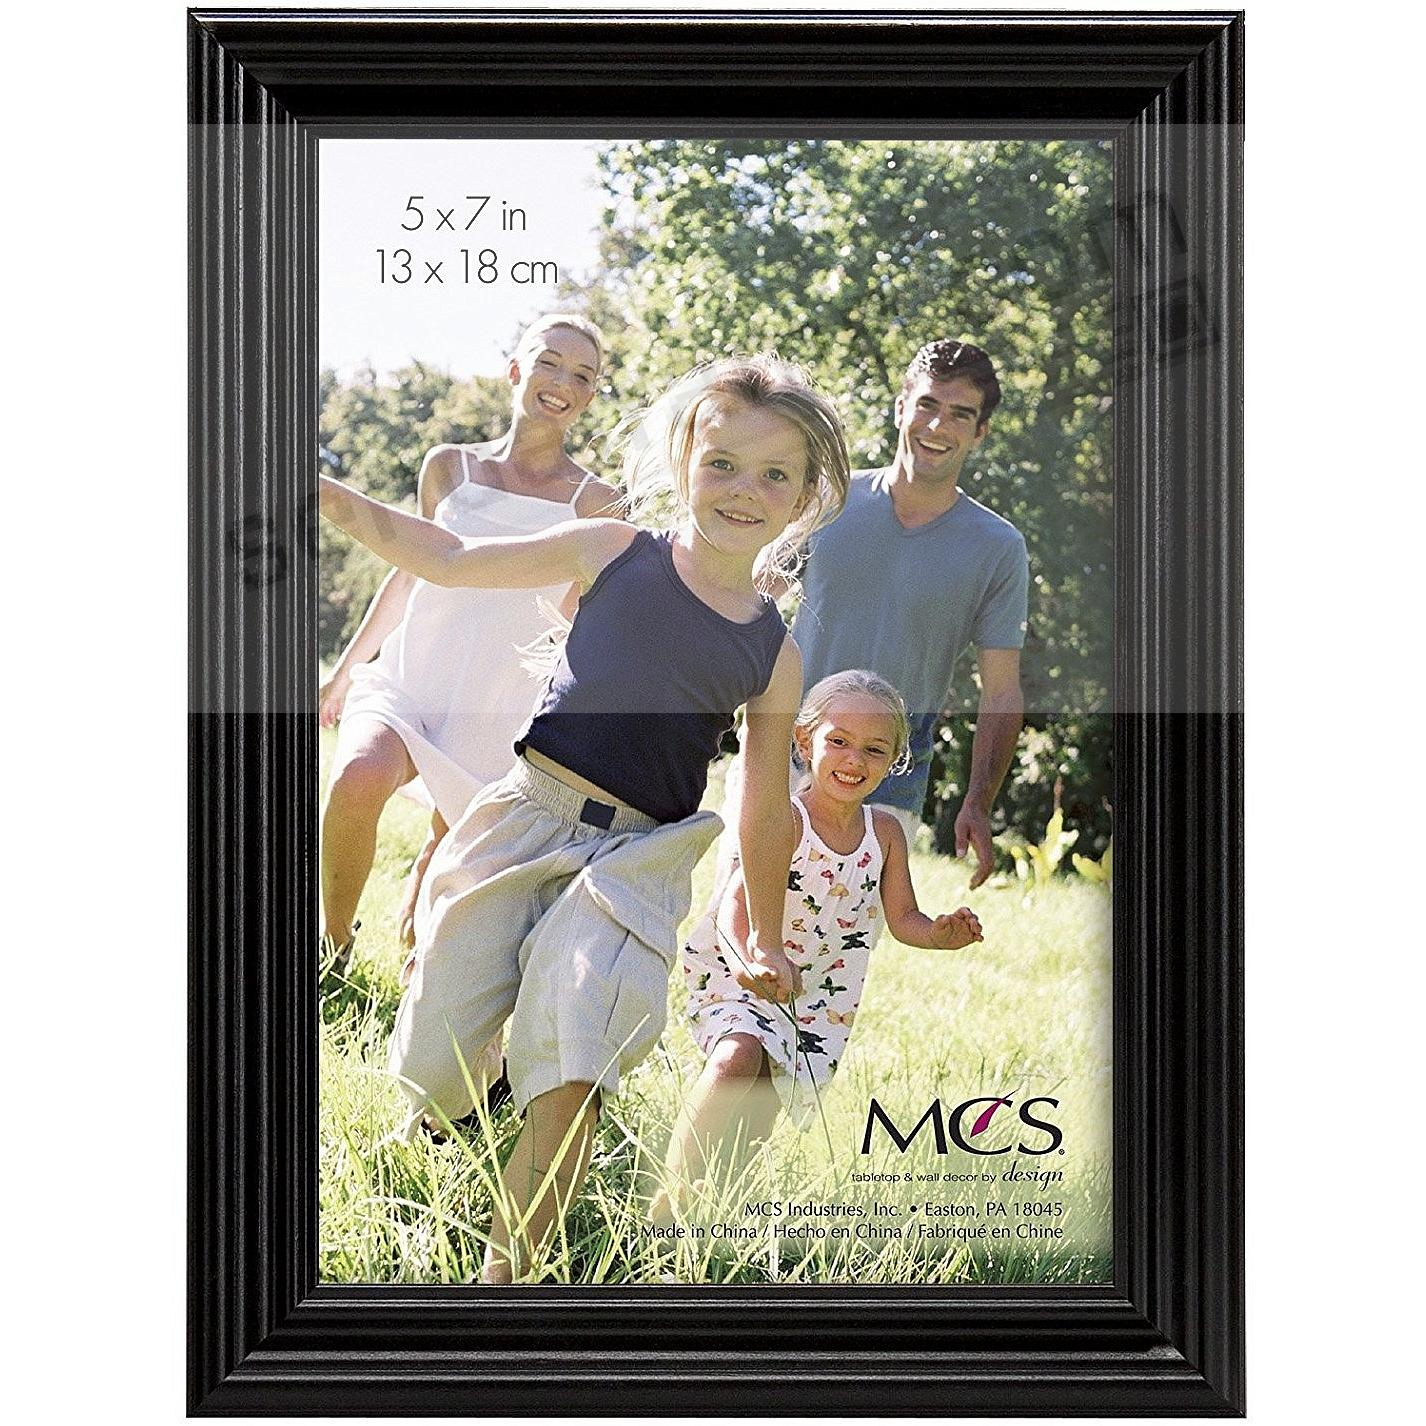 STYLE ONE Black Solid Wood 5x7 frame from MCS®